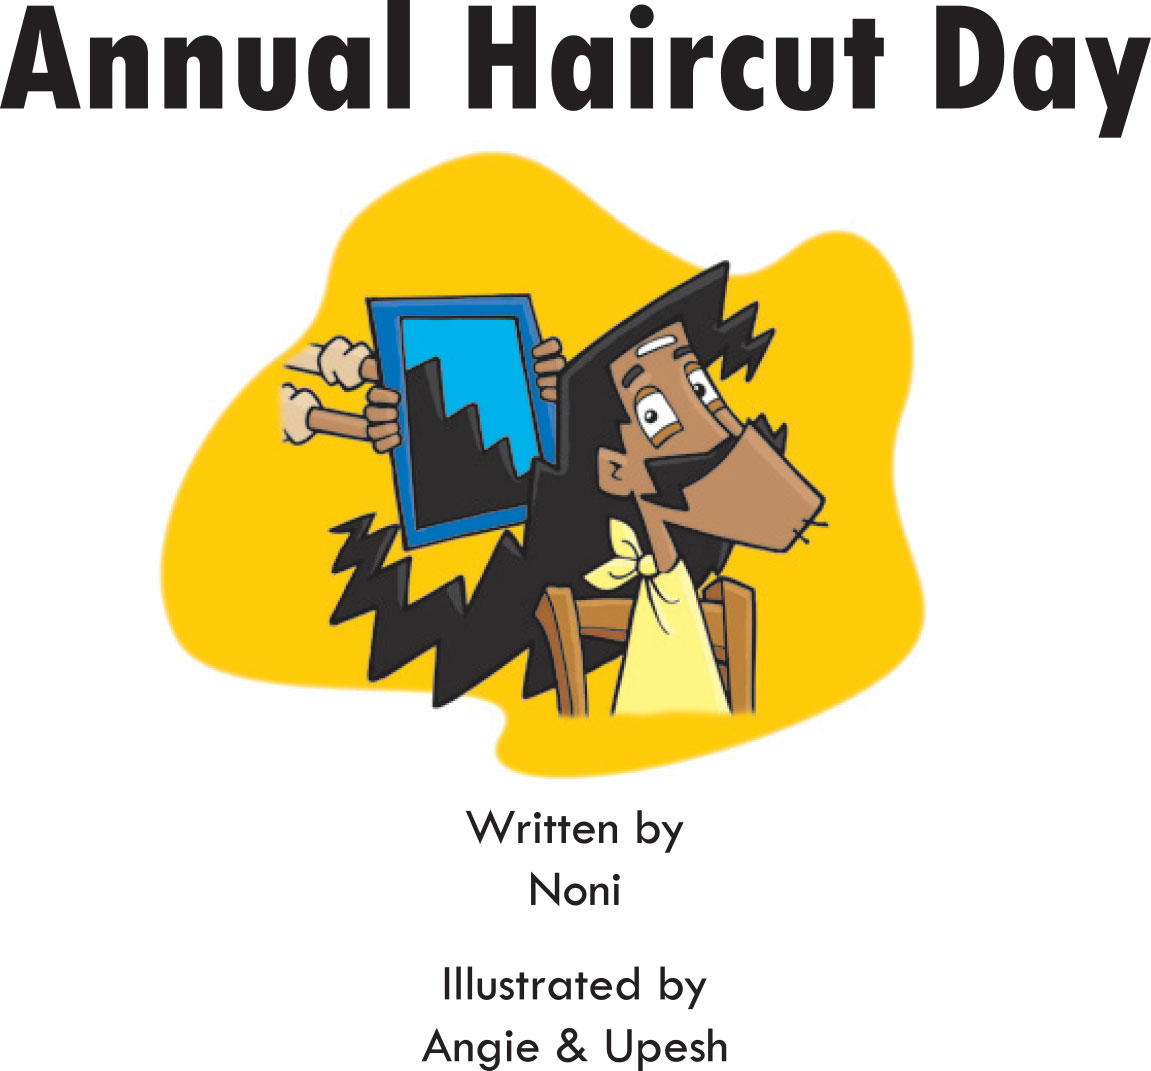 Free short story for kids - Annual Haircut Day - page 1